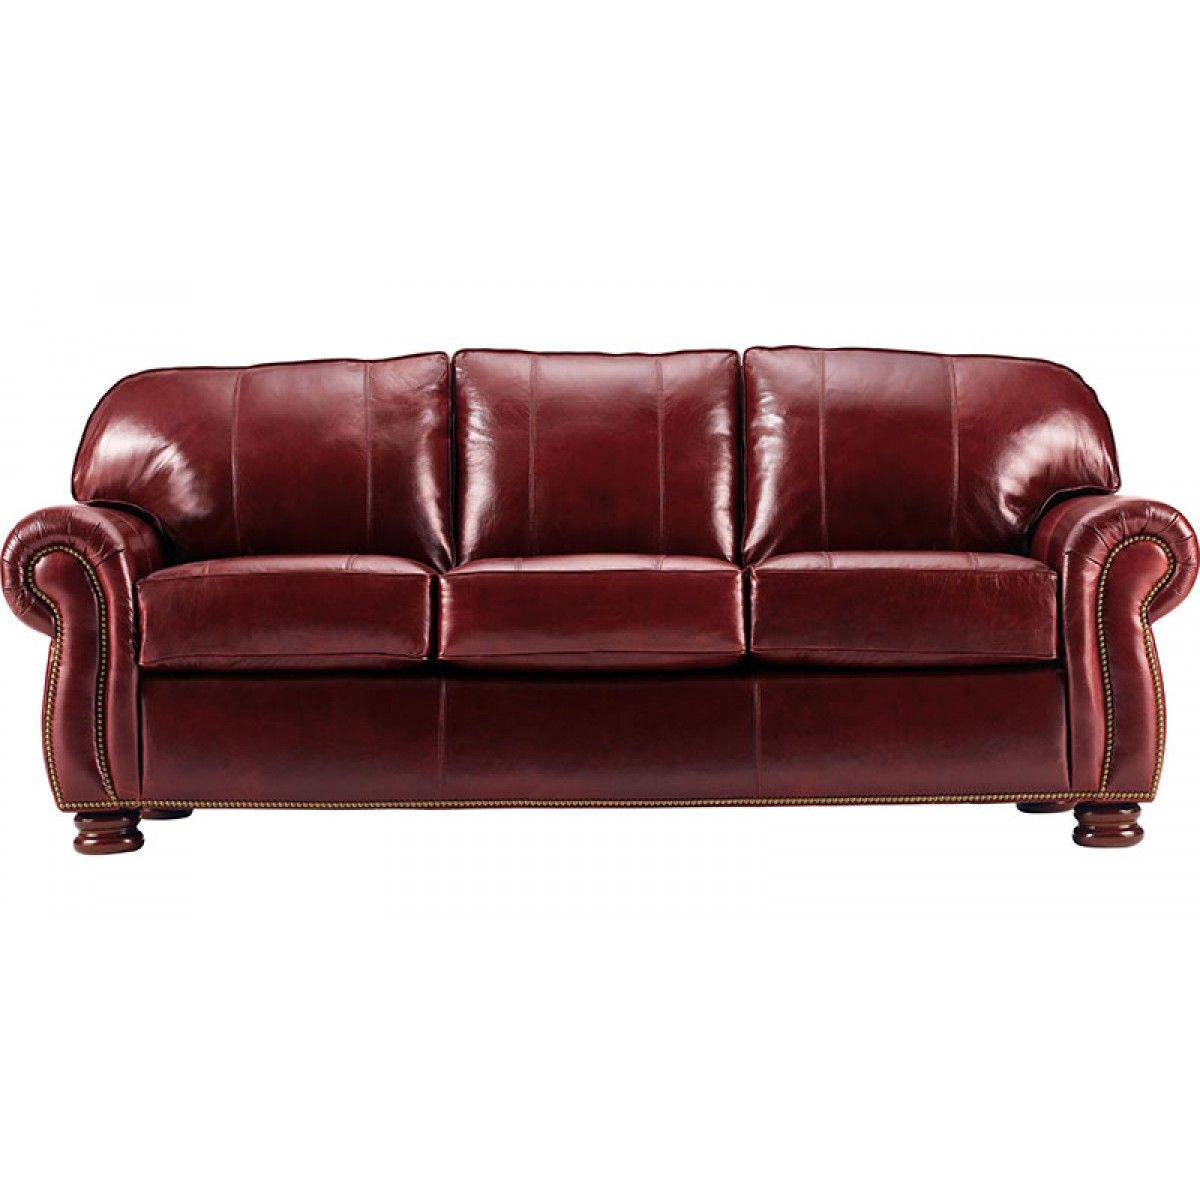 thomasville benjamin leather sofa with chaise lounge for sale furniture gradschoolfairs